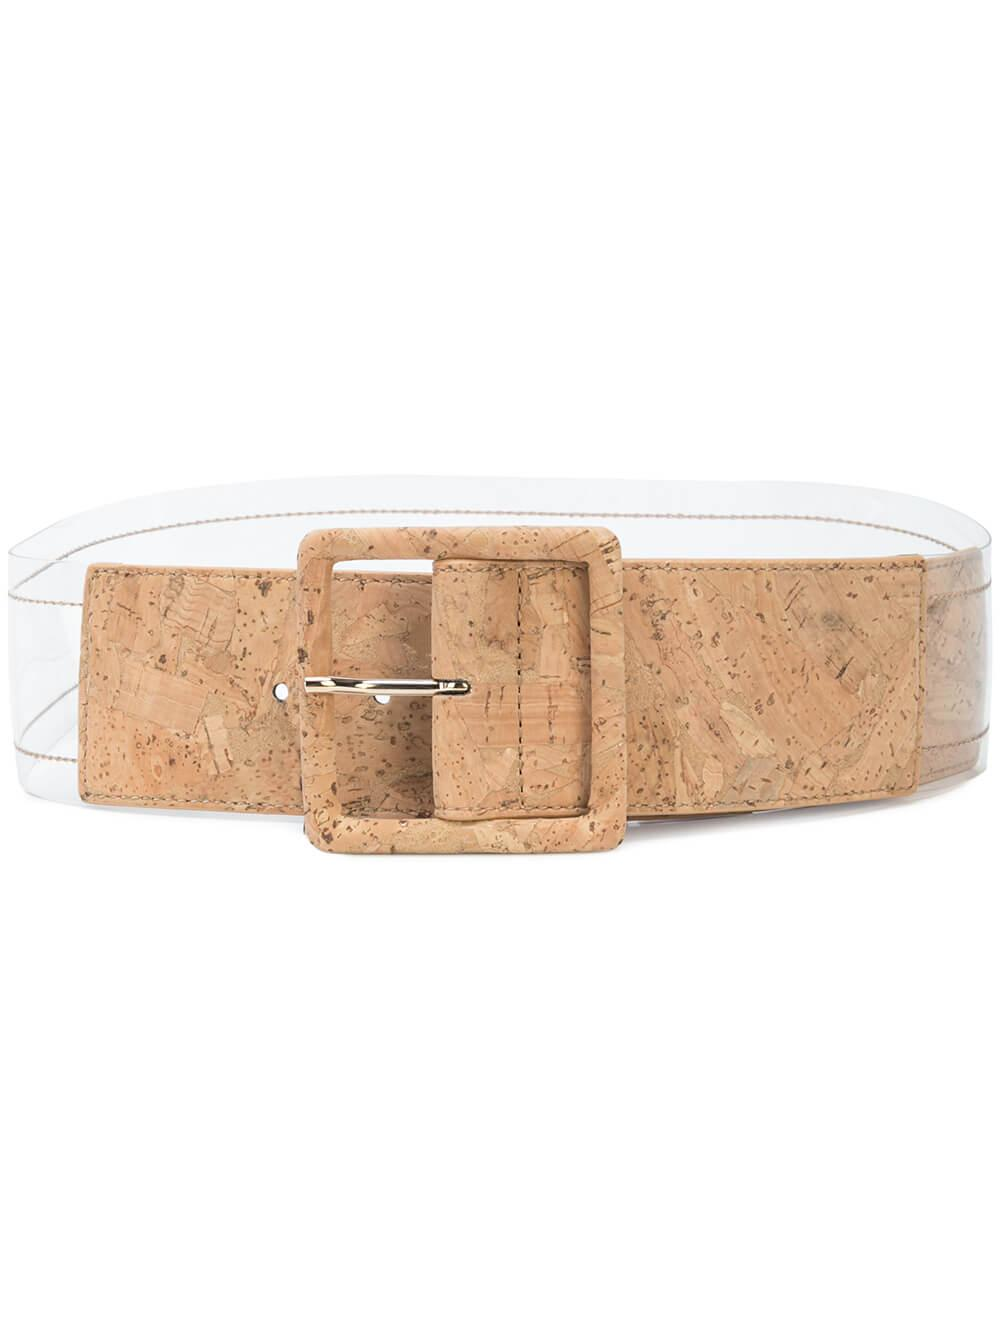 Tinmarie Cork Acetate Belt